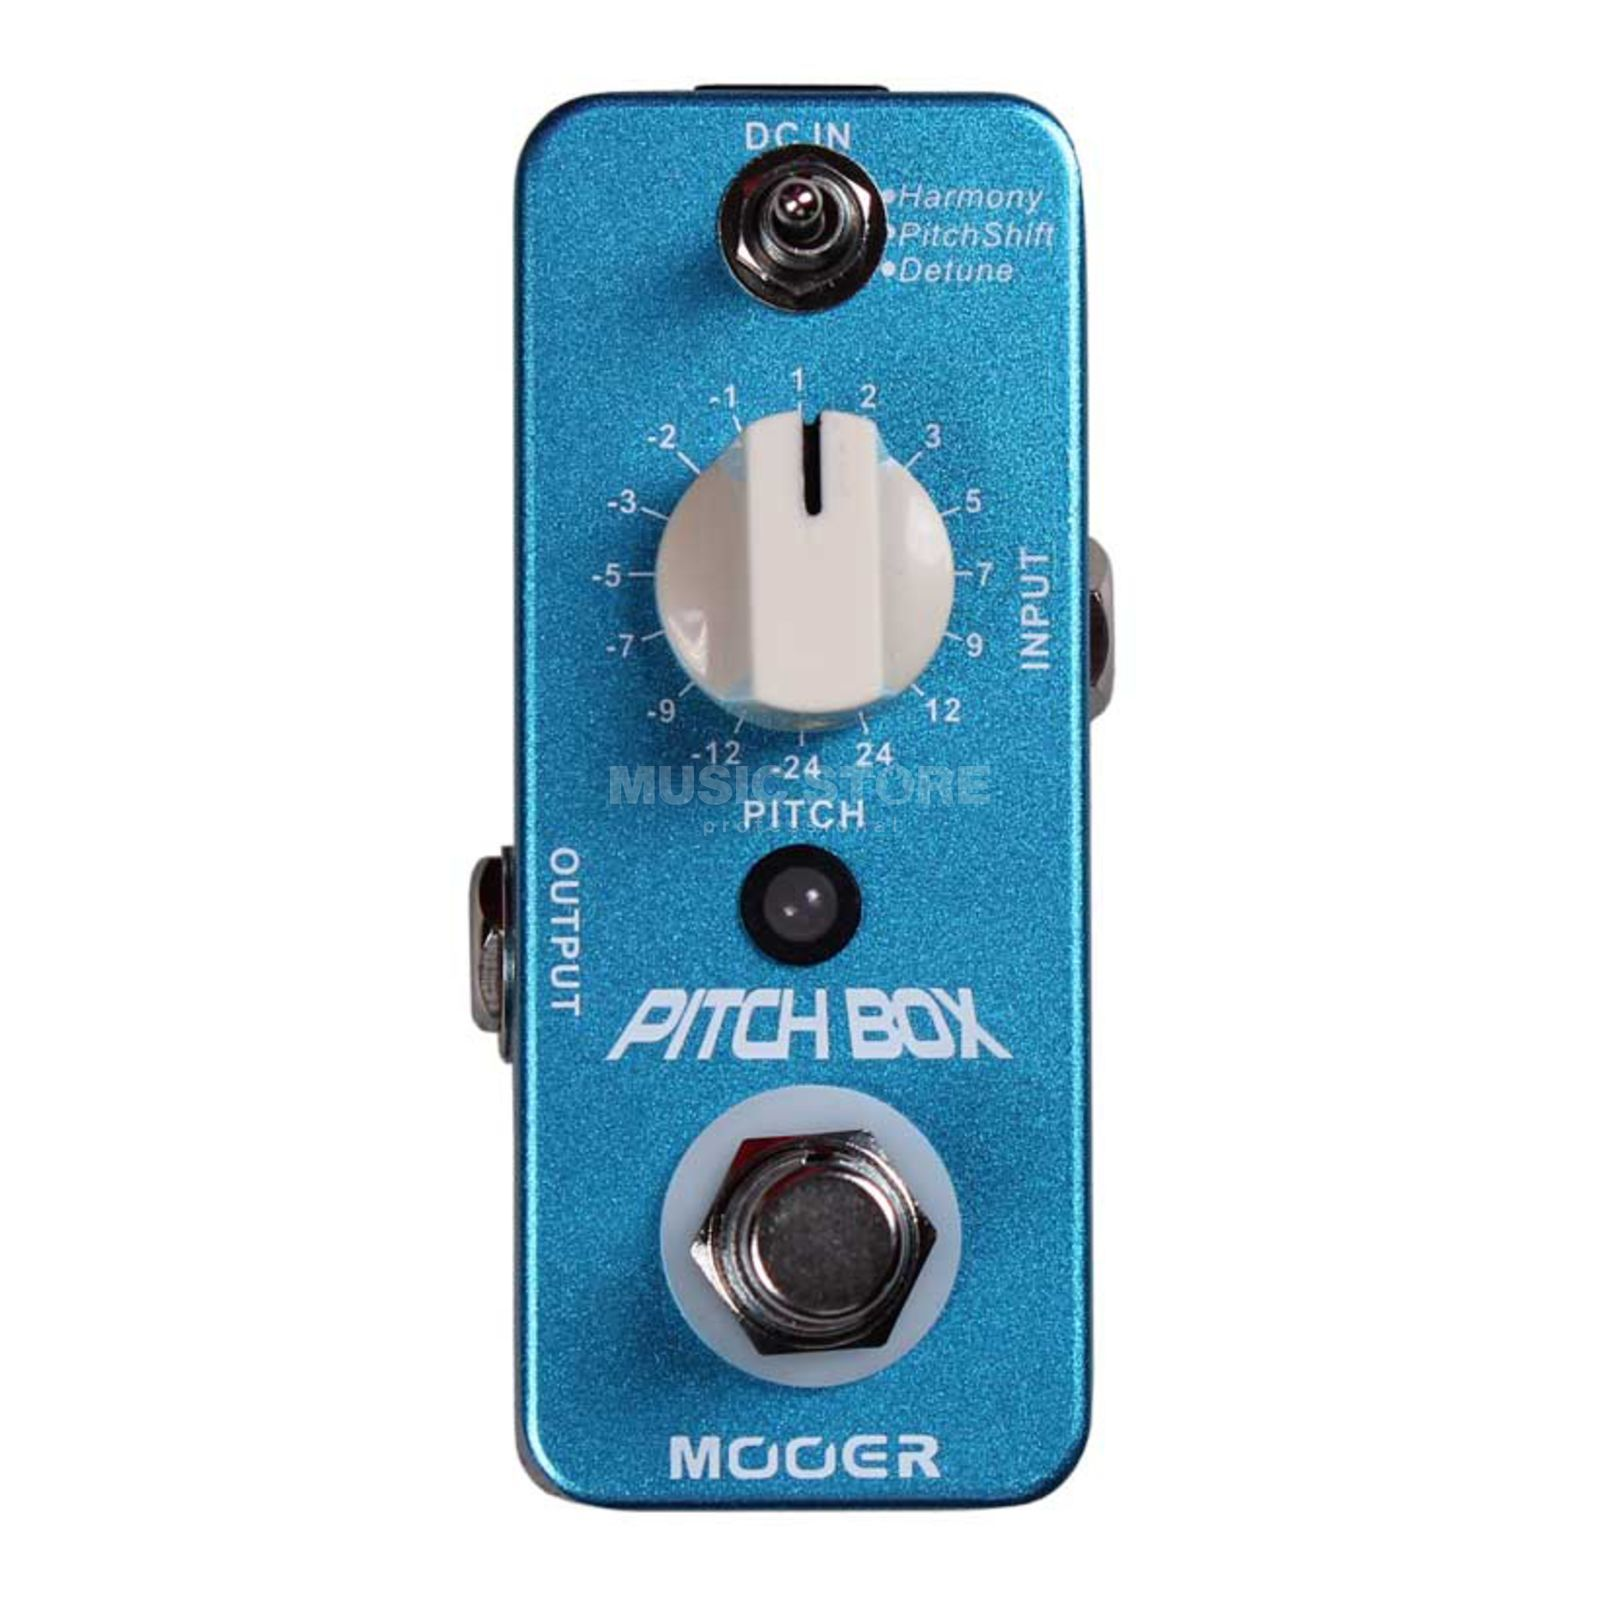 Mooer Audio Pitch Box Pitch Shifter/Detune Produktbild